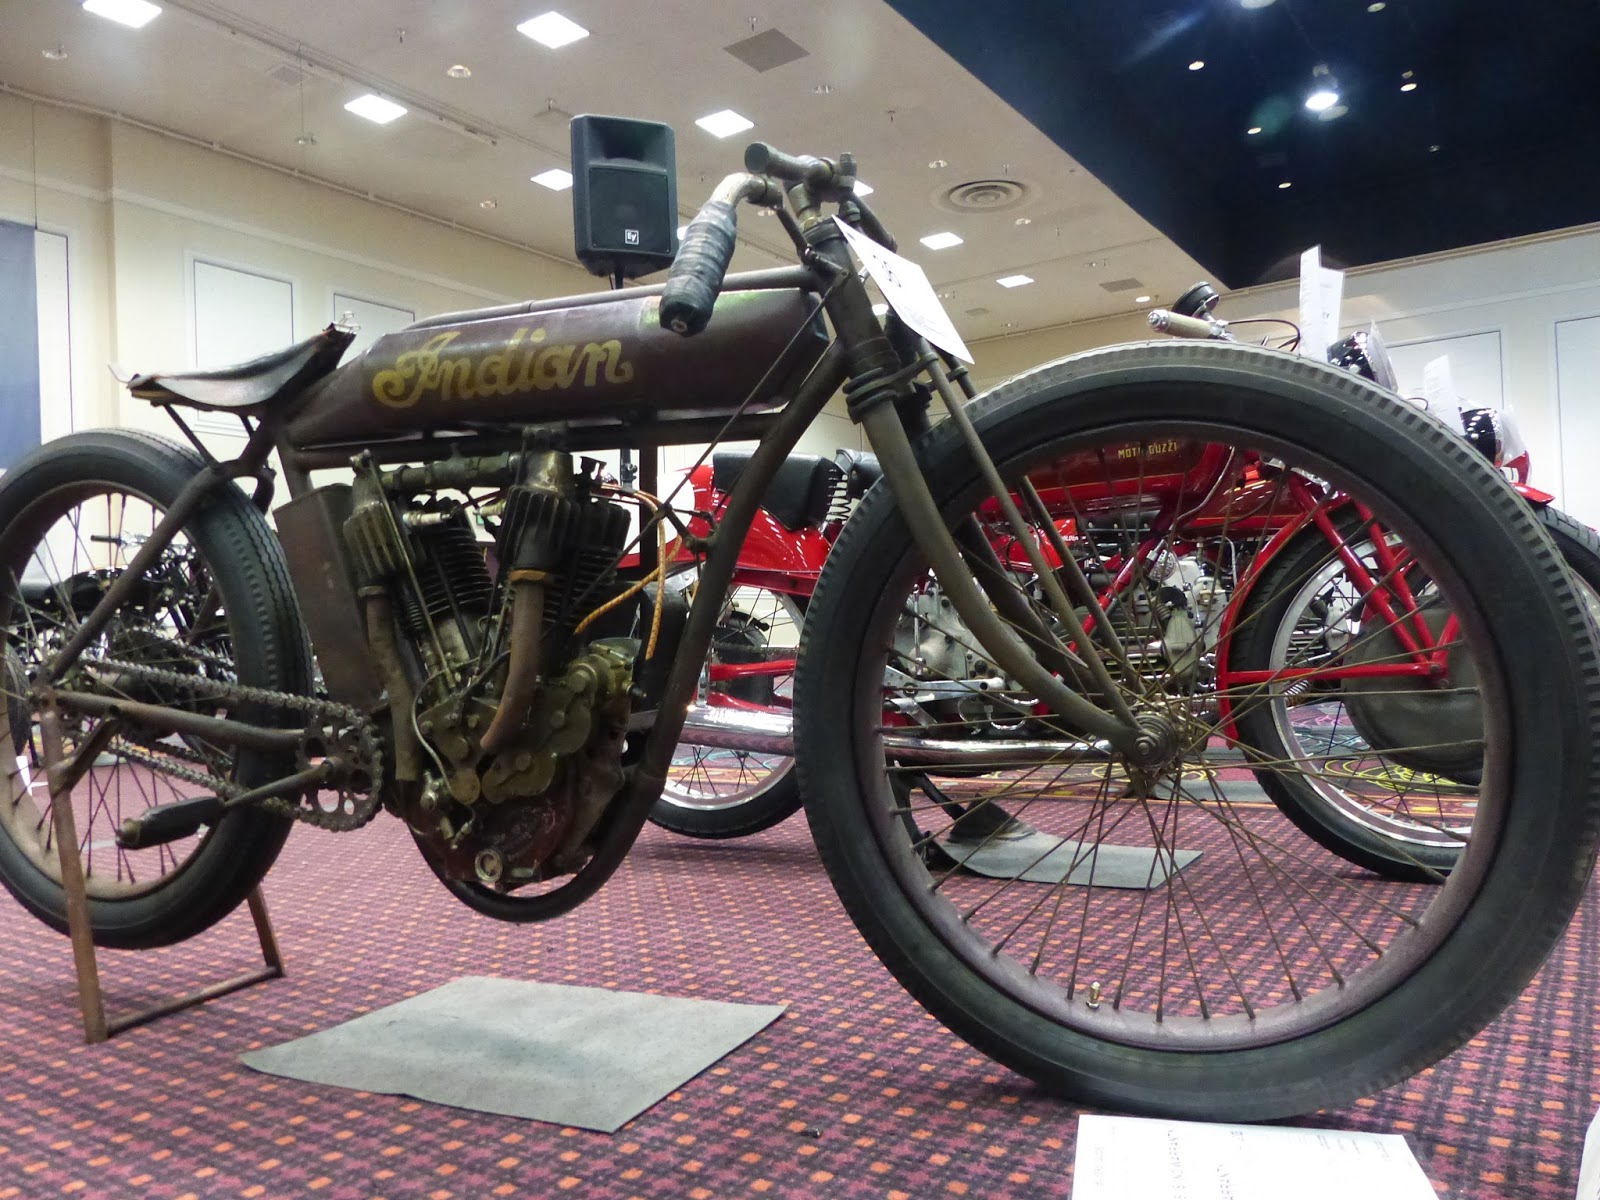 1970 Harley Davidson Evel Knievel Tribute: OldMotoDude: 1912 Indian Board Track Racer For Sale At The